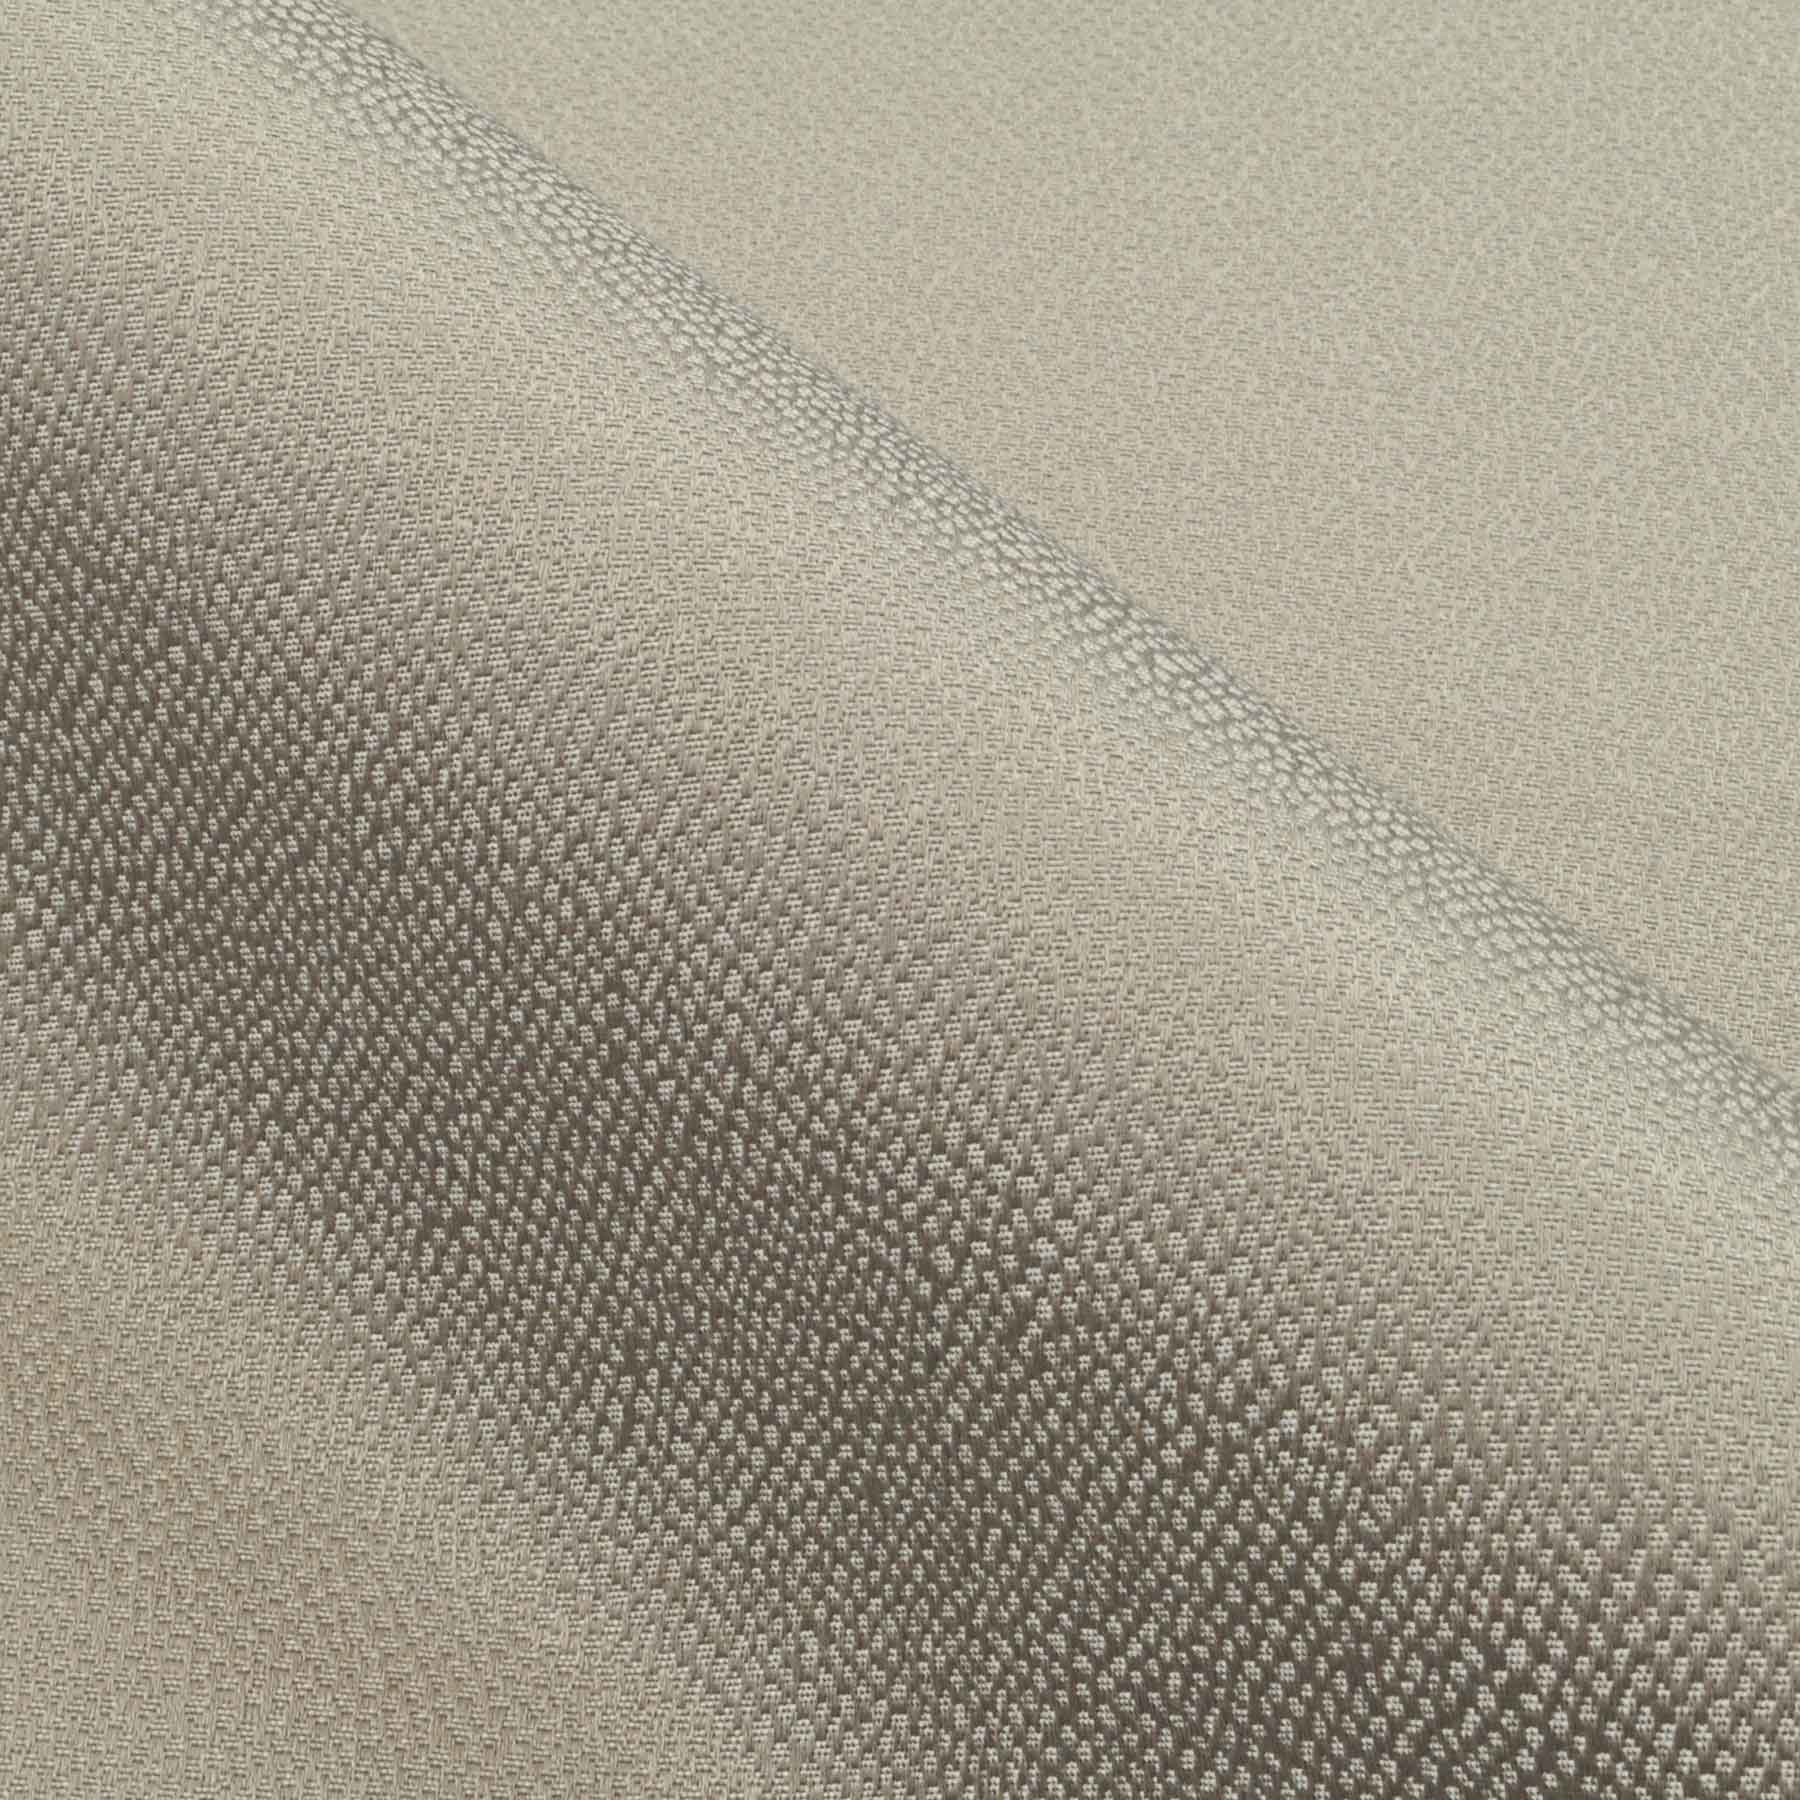 Drapery Fabric MEHINDI In PEWTER By P/Kaufmann Contract